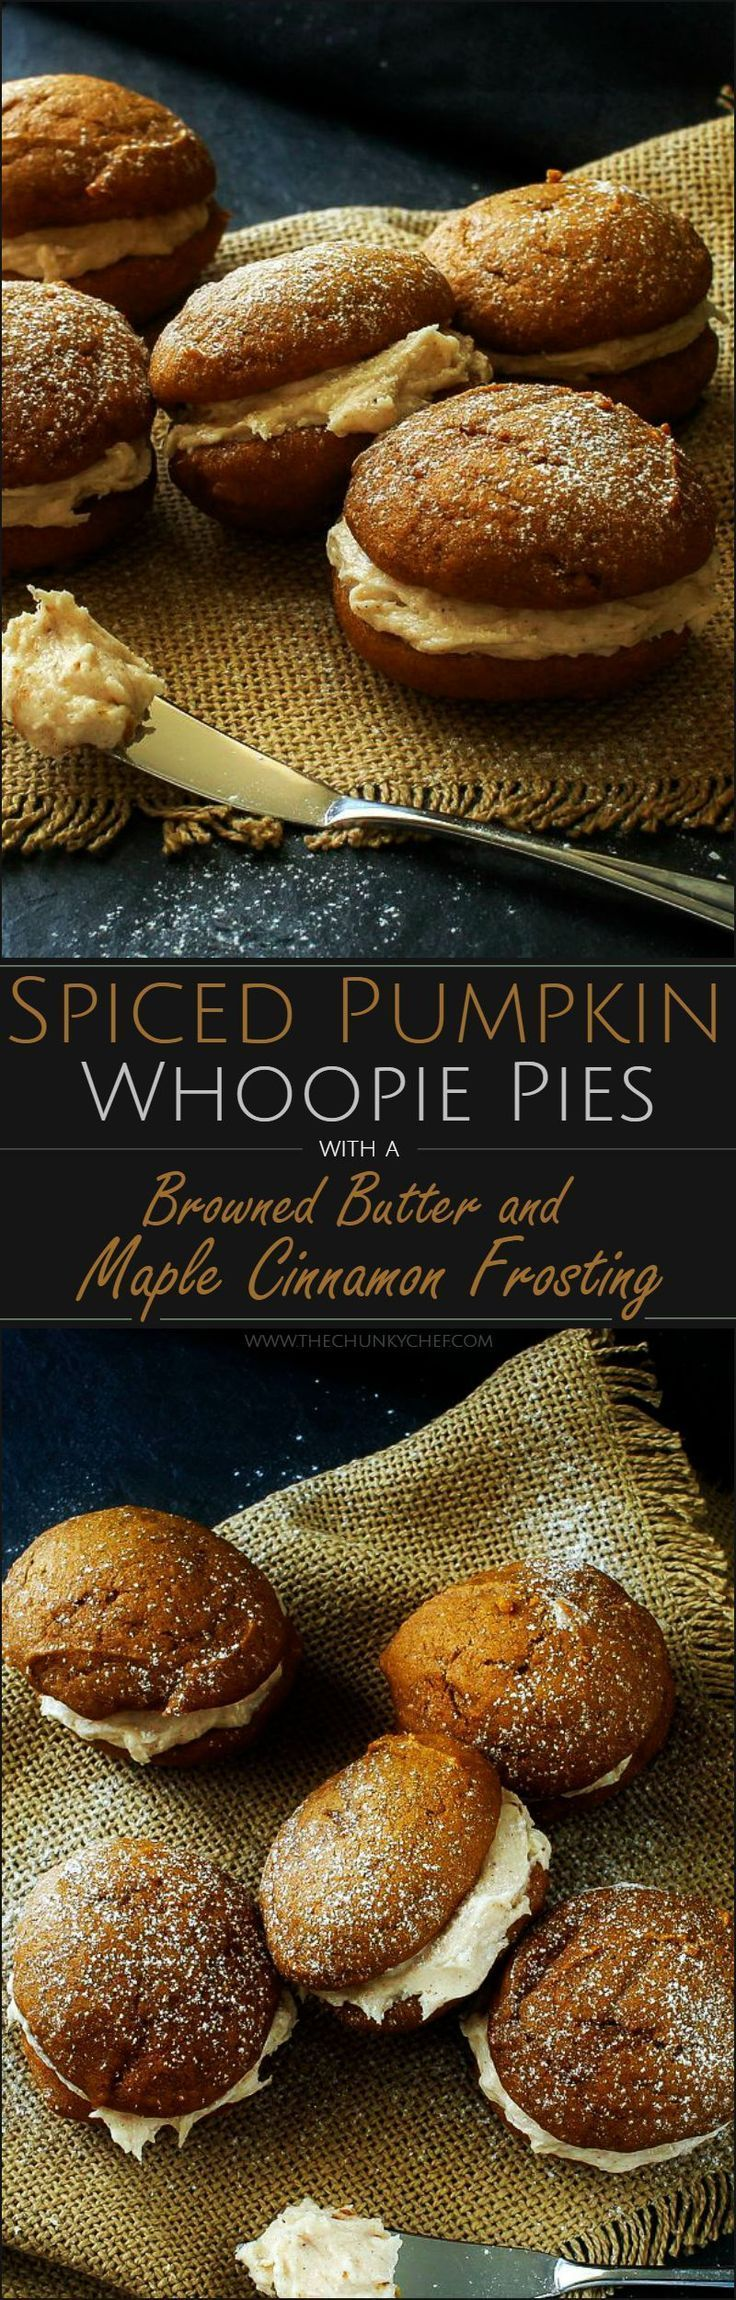 Spiced Pumpkin Whoopie Pies | The Chunky Chef | Soft and light spiced pumpkin cookies sandwiched together with a decadent, yet easy to make, browned butter maple cinnamon frosting!